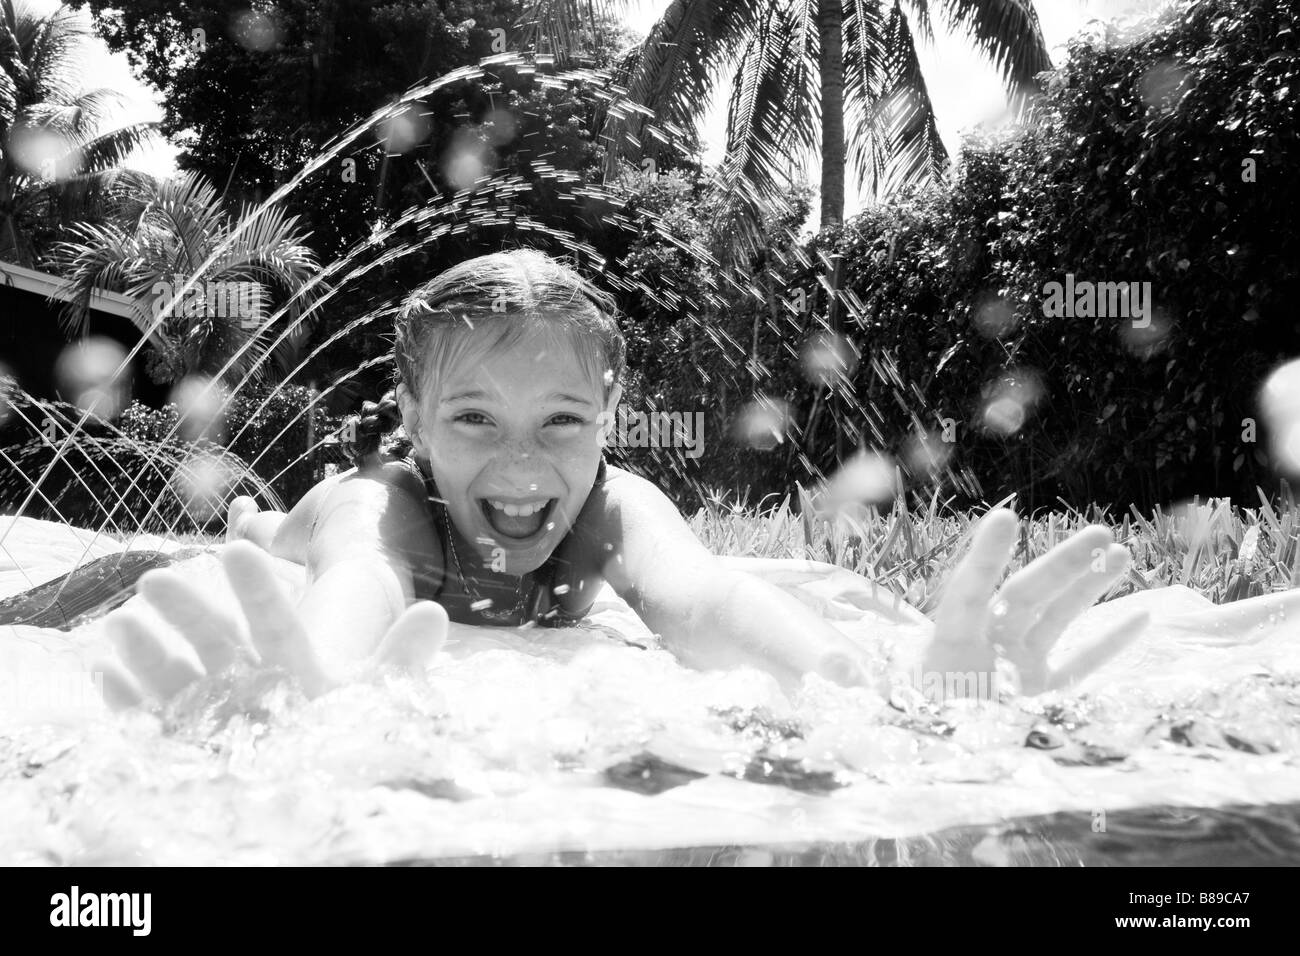 child playing on water slide on grass - Stock Image